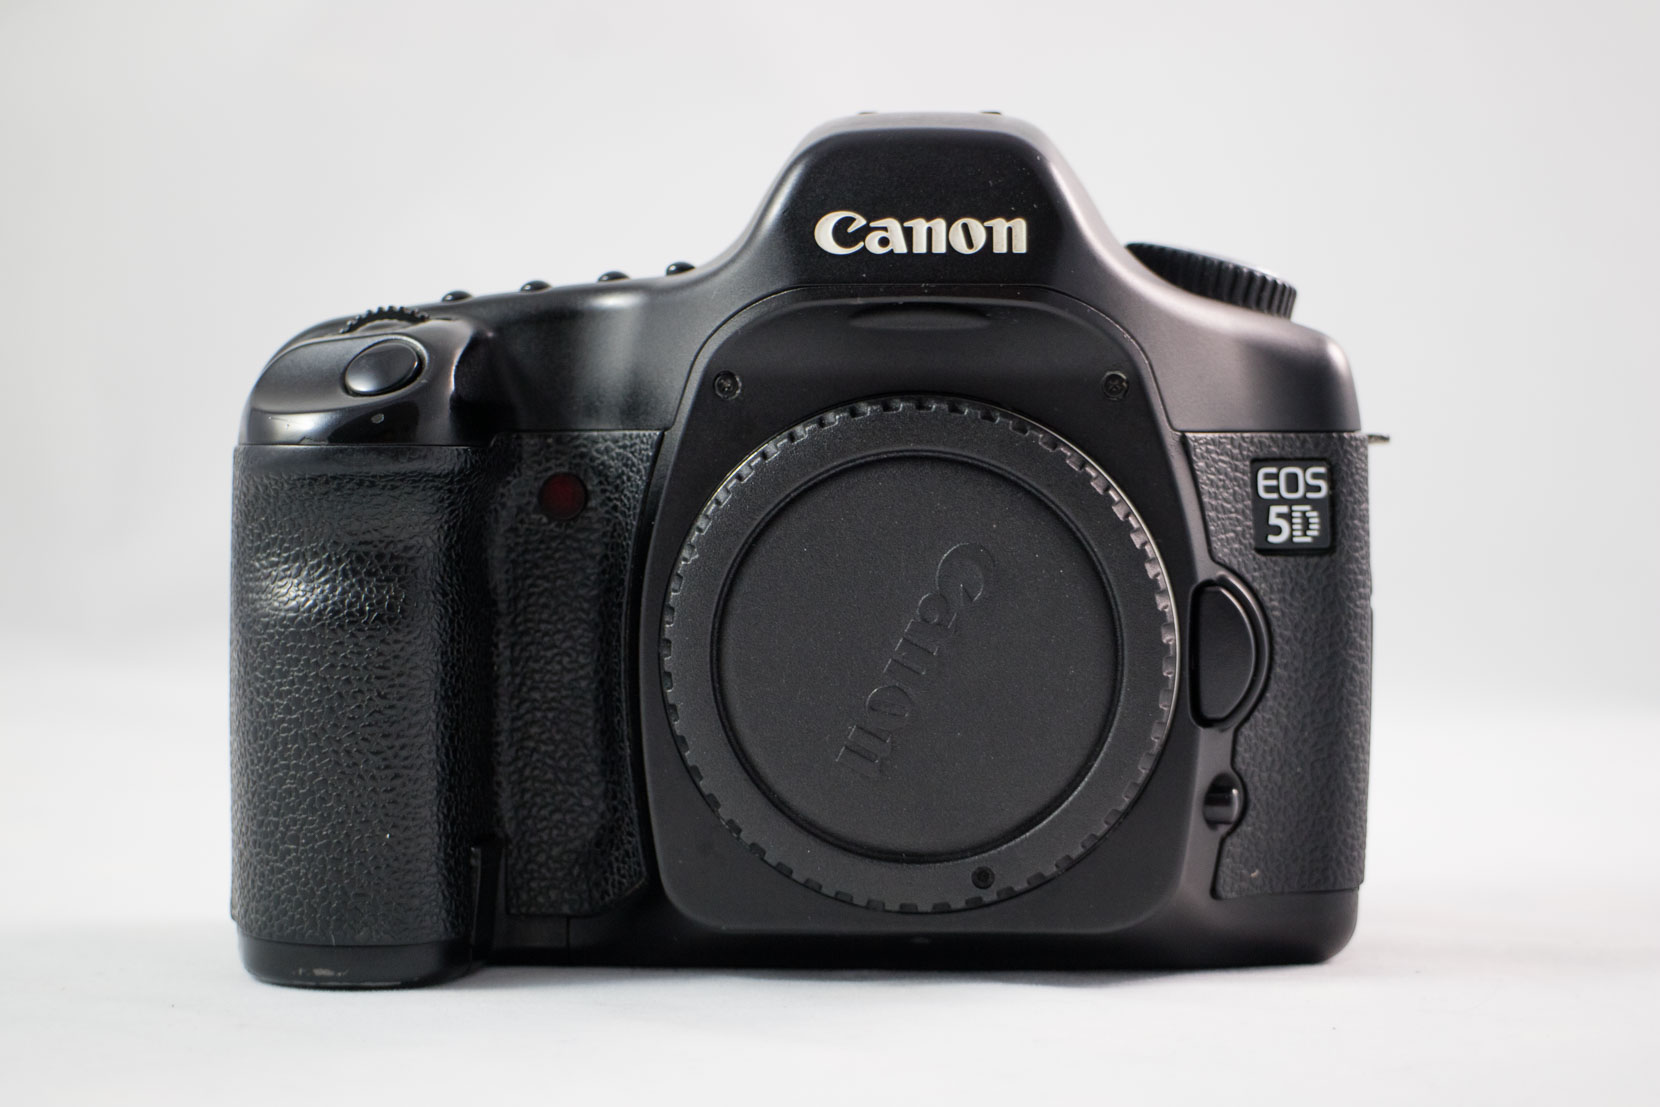 For Sale - Canon 5D Infrared - with ACS 6months Warantee!